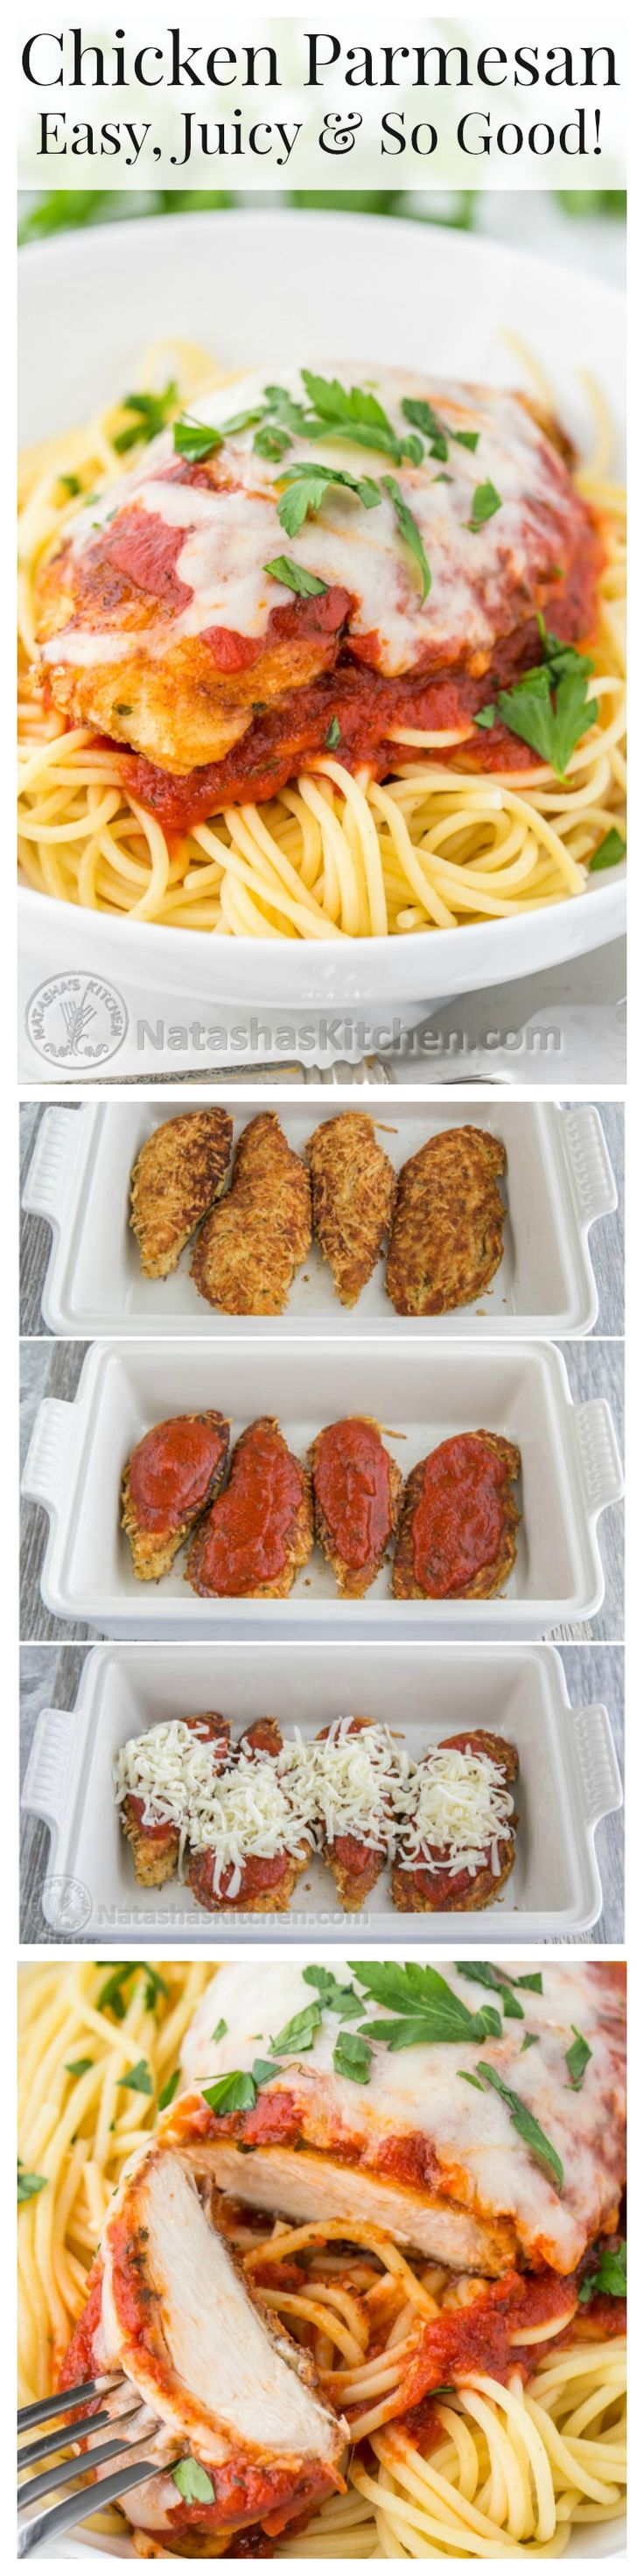 Everything about this Chicken Parmesan is good. Make it once and you'll make it again and again! A family favorite! @natashaskitchen